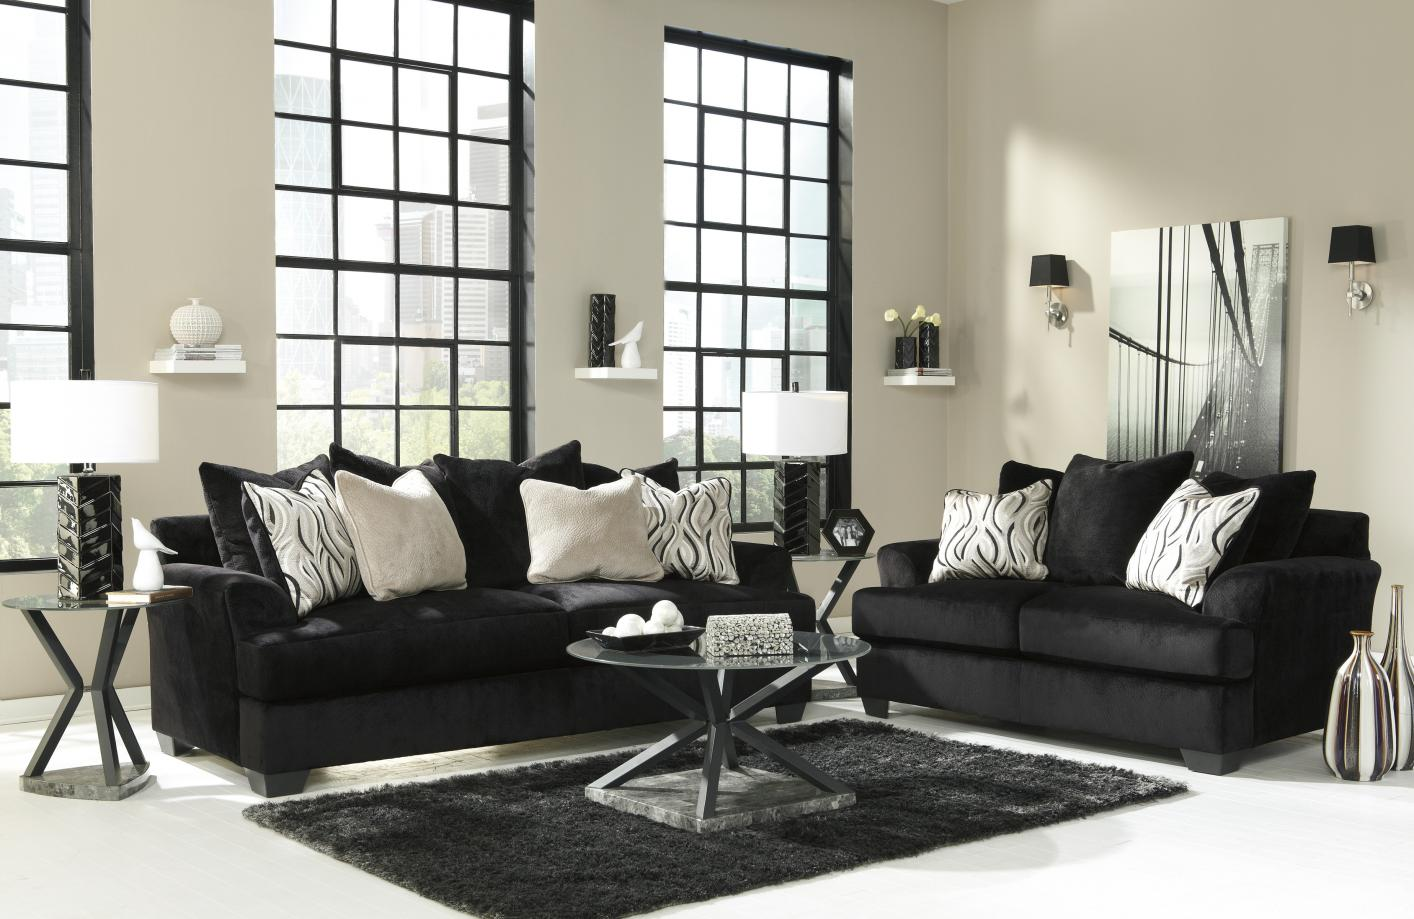 Signature Design By Ashley Heflin 4720038 4720035 Black Fabric Sofa And Loveseat Set Steal A